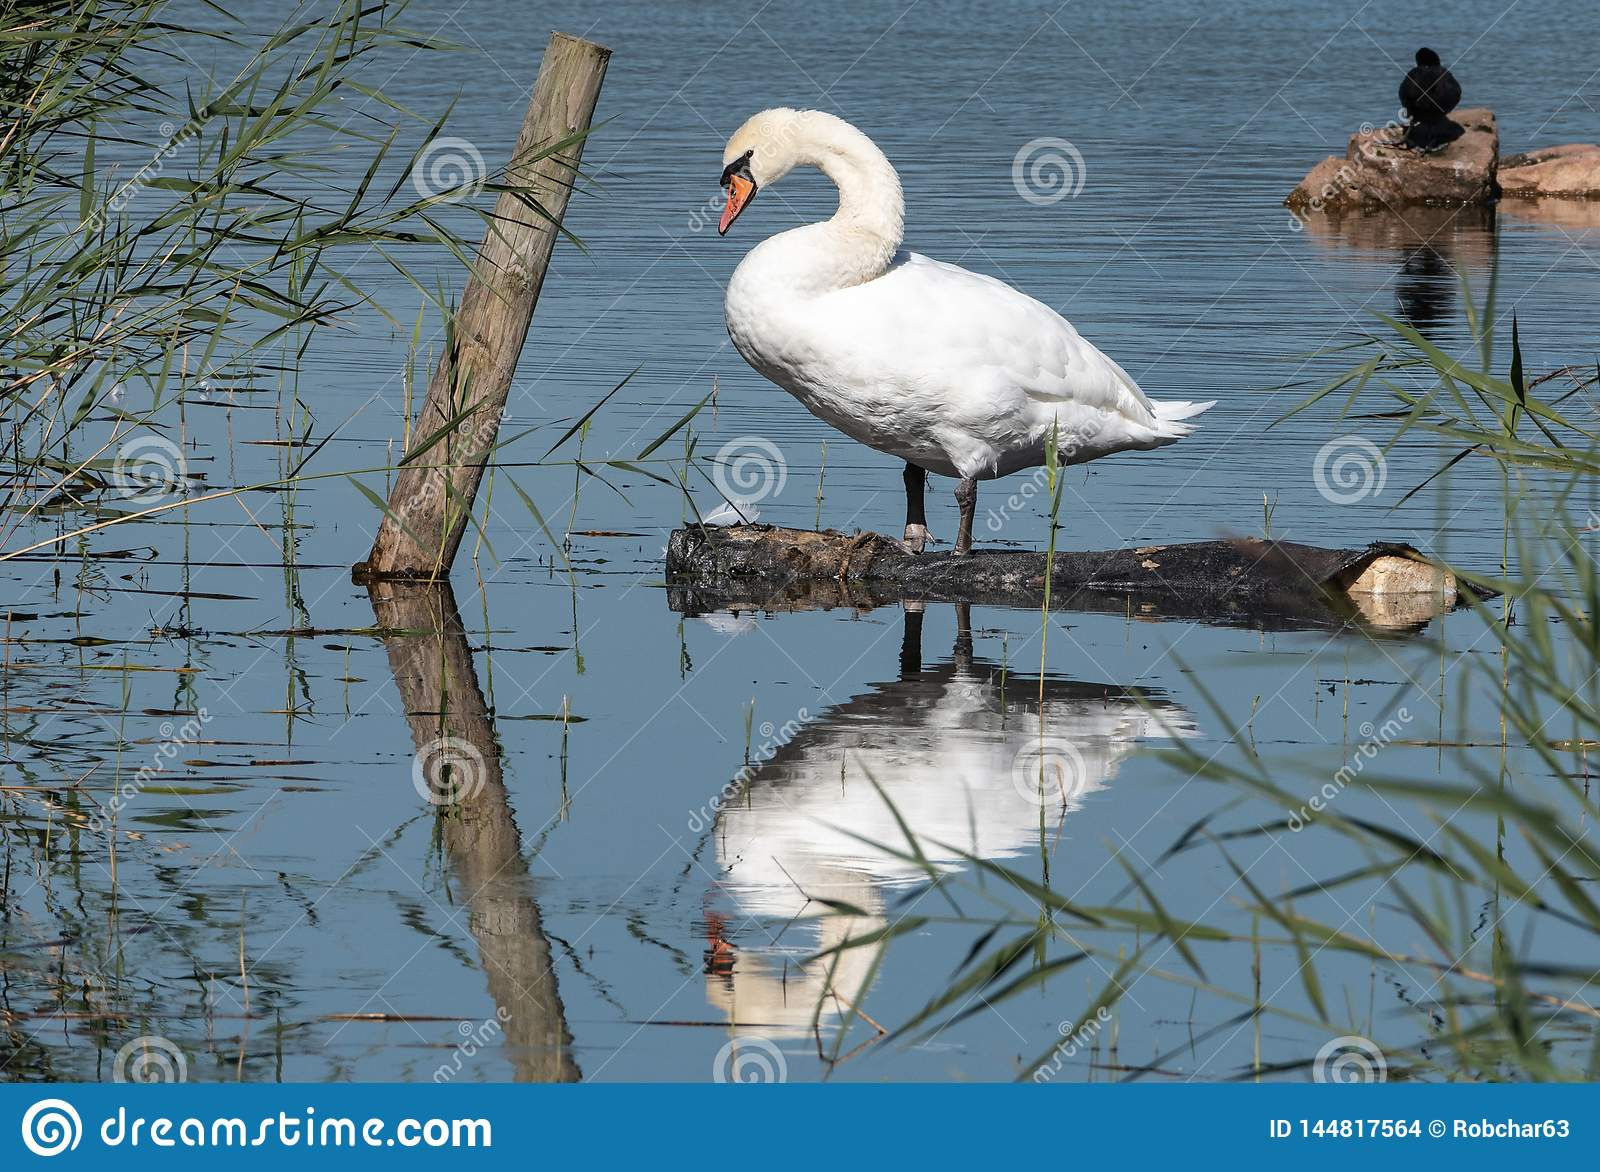 Reflections of a Mute Swan